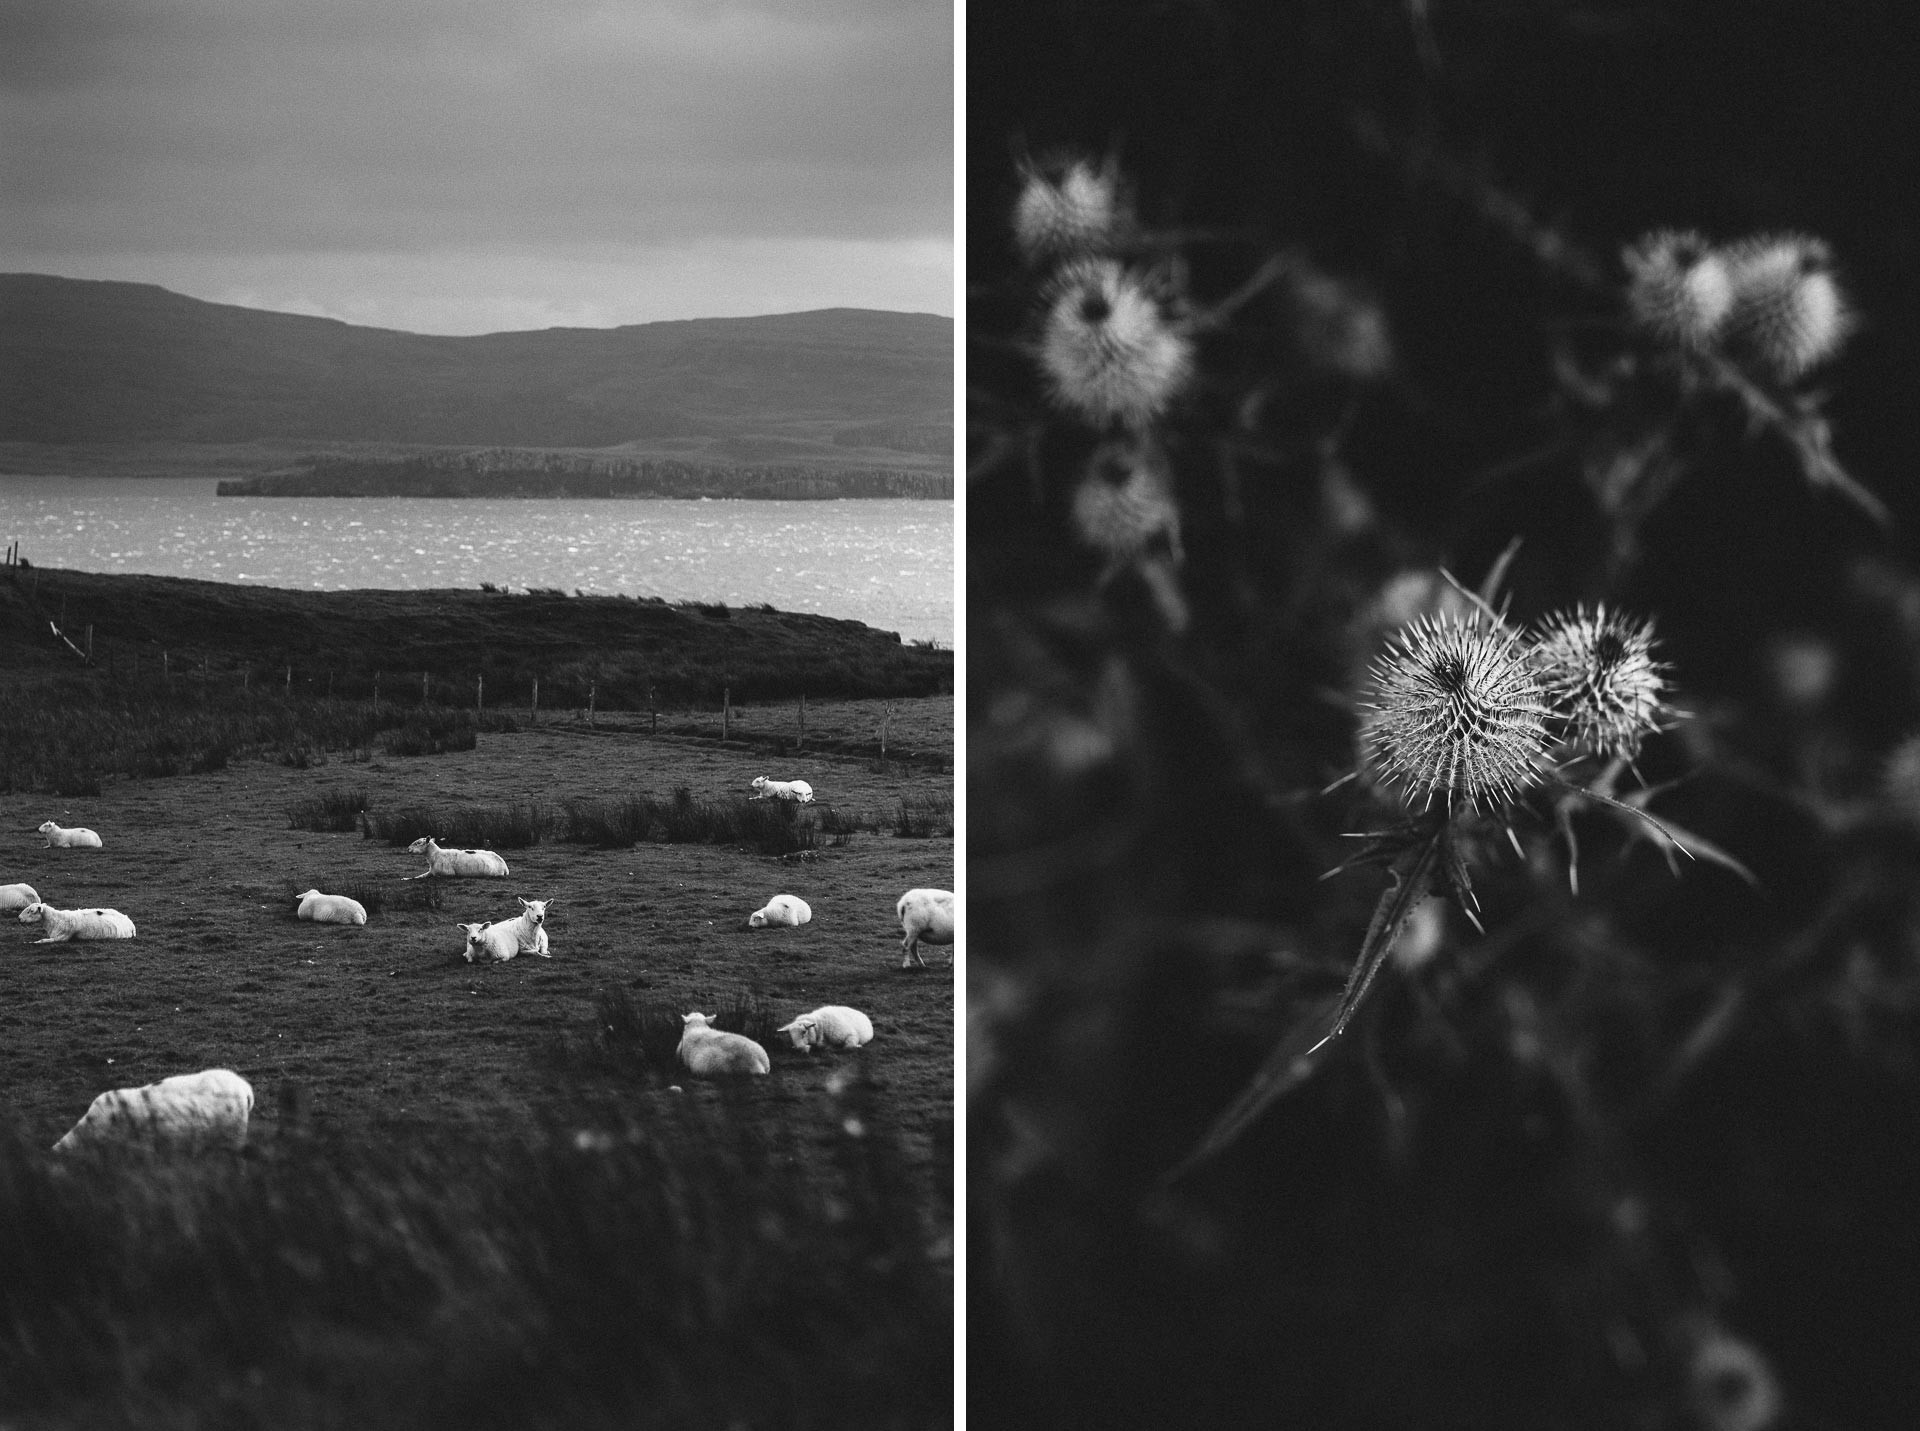 Megan_Matt_Elopement_IntimateWedding_Scotland_IsleOfSkye_JeanLaurentGaudy_MIX006